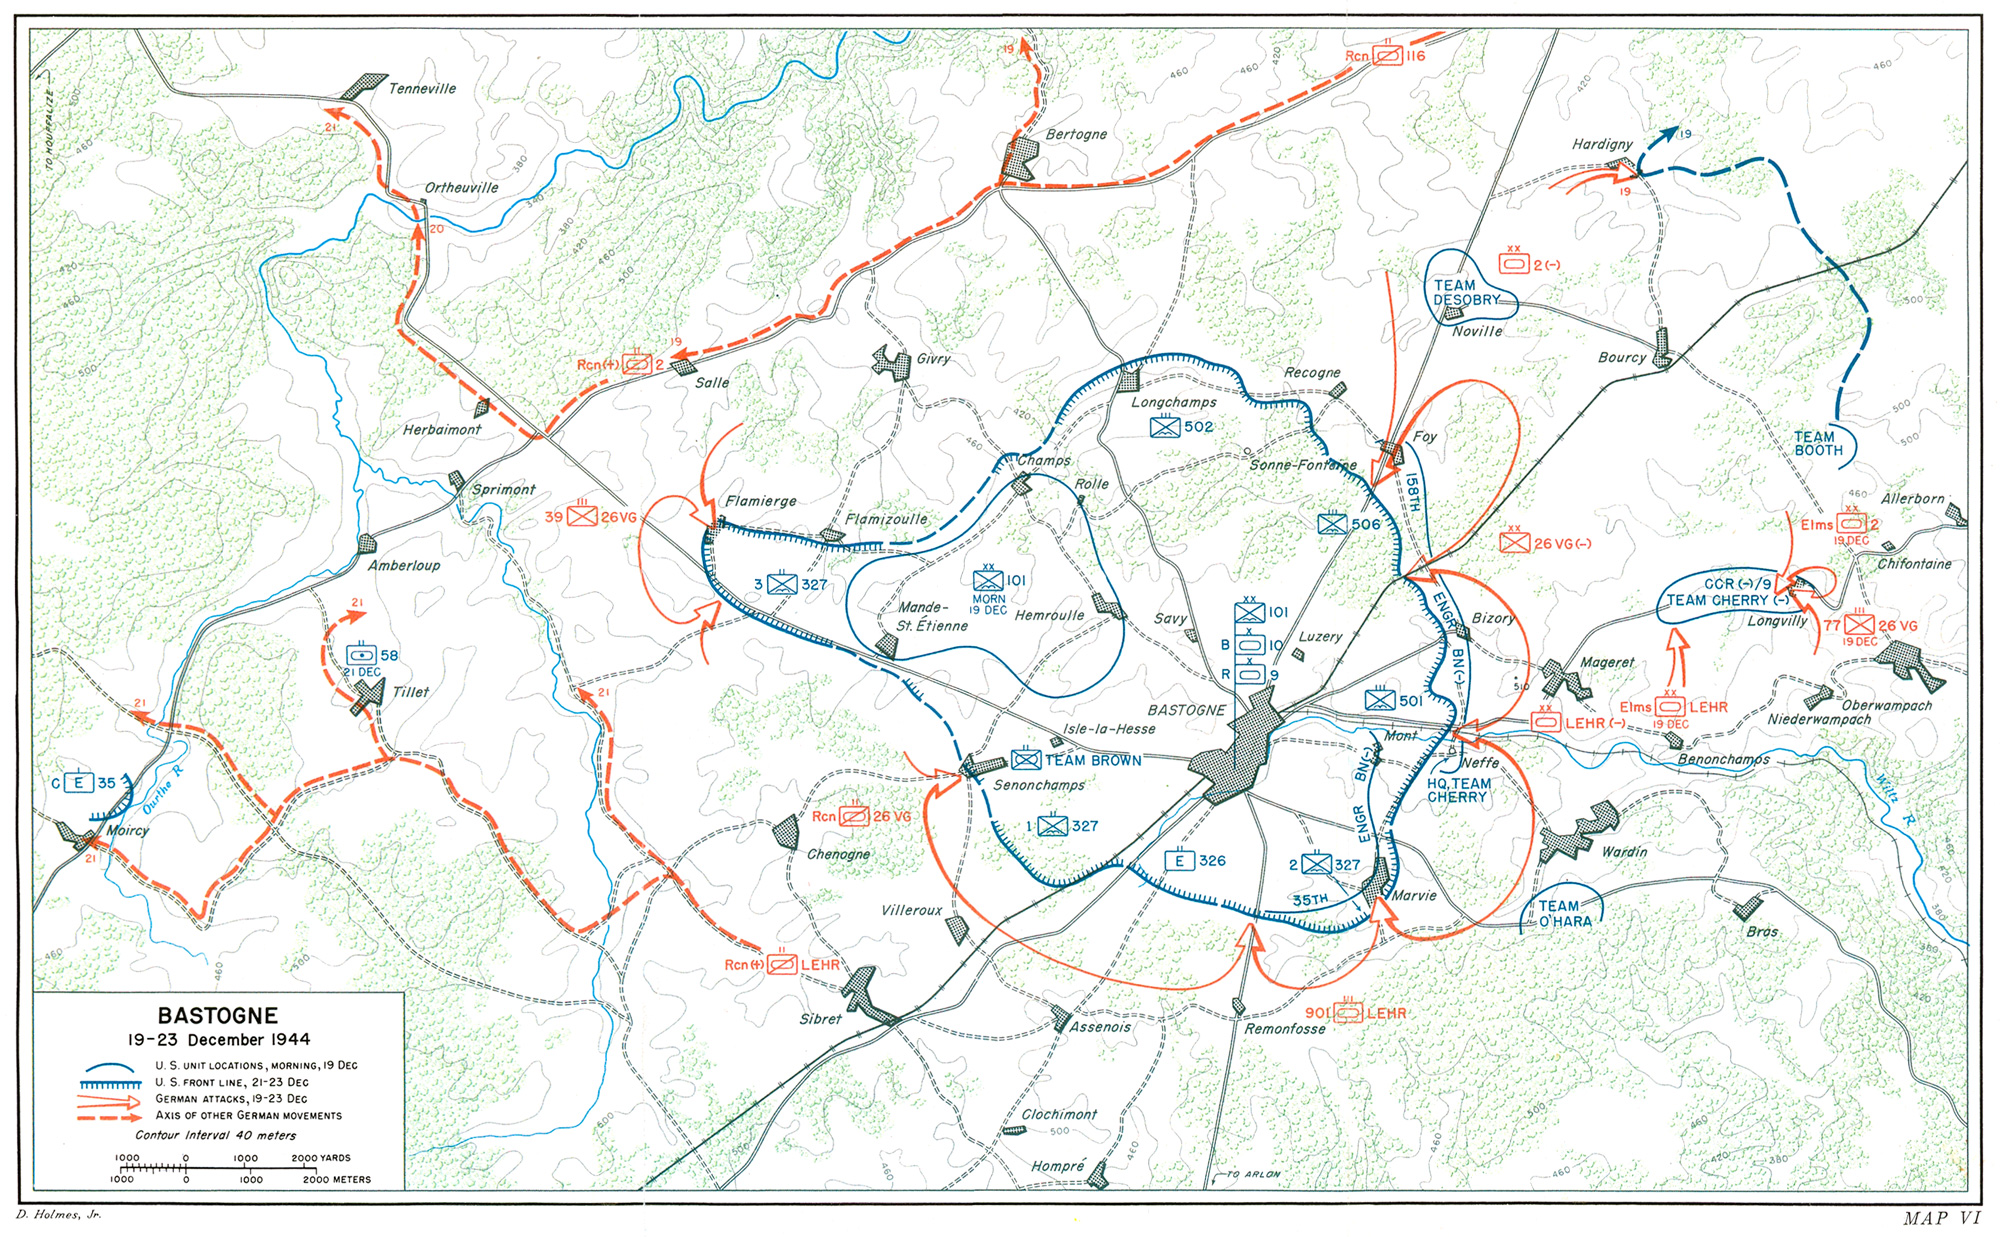 the initial deployment east of bastogne